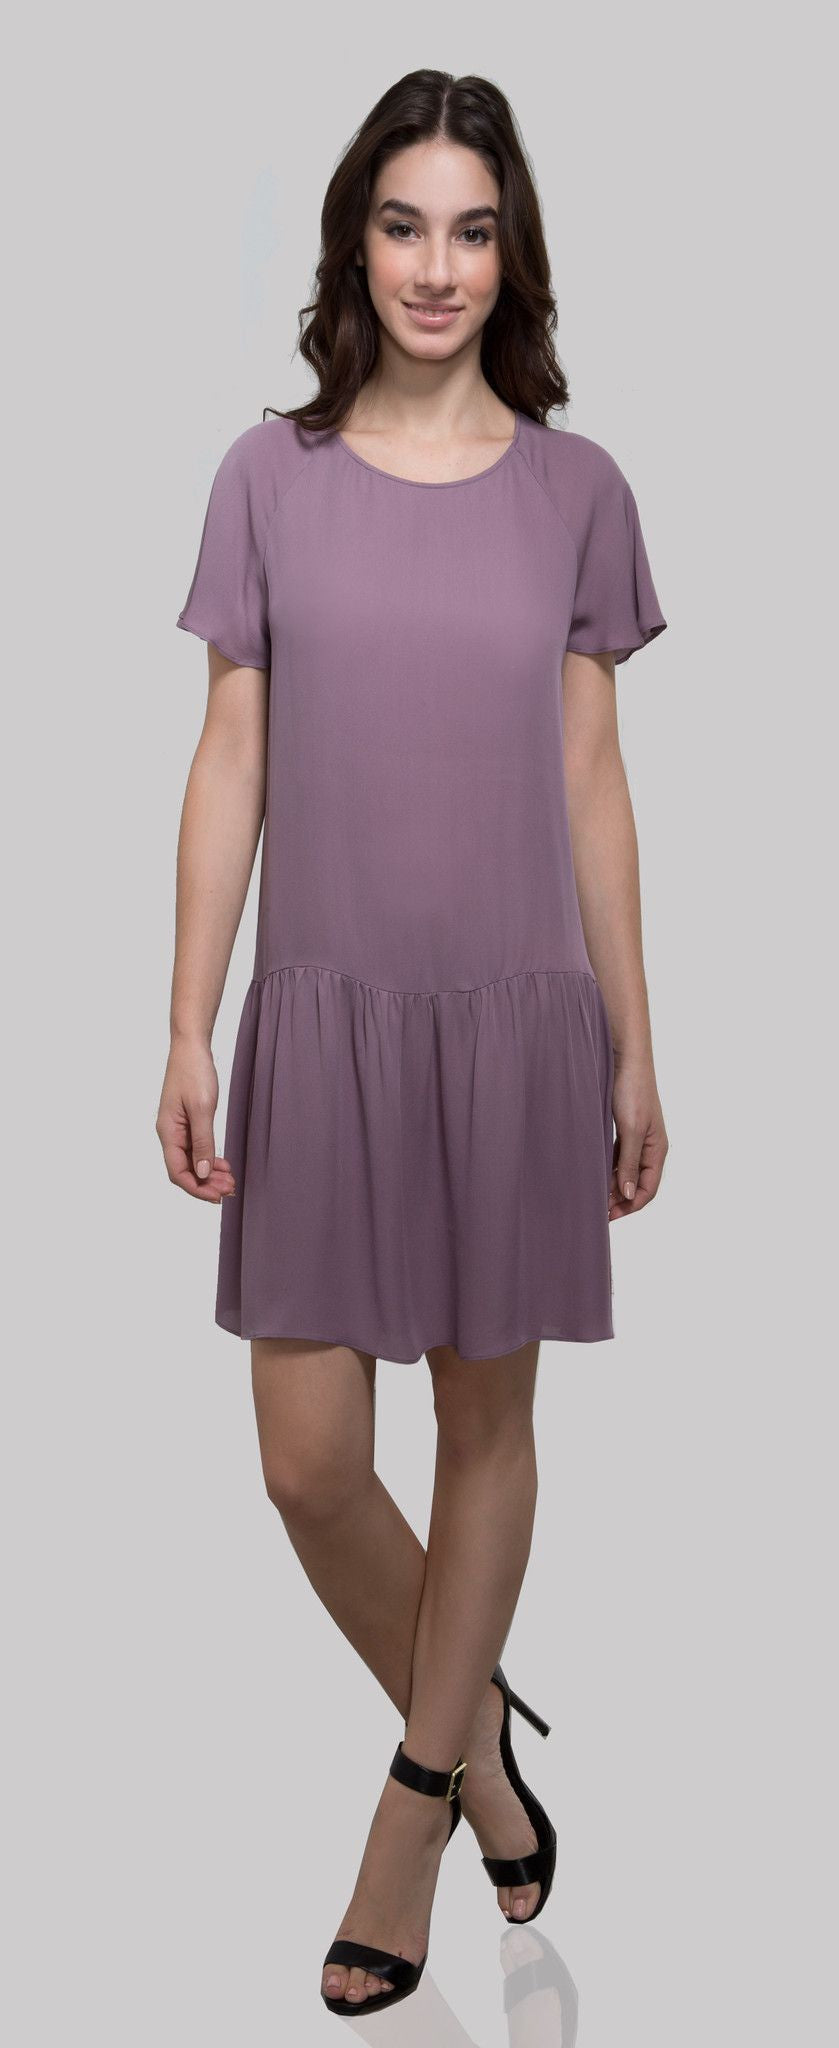 D809 SILK DOUBLE GEORGETTE TOP PLUM